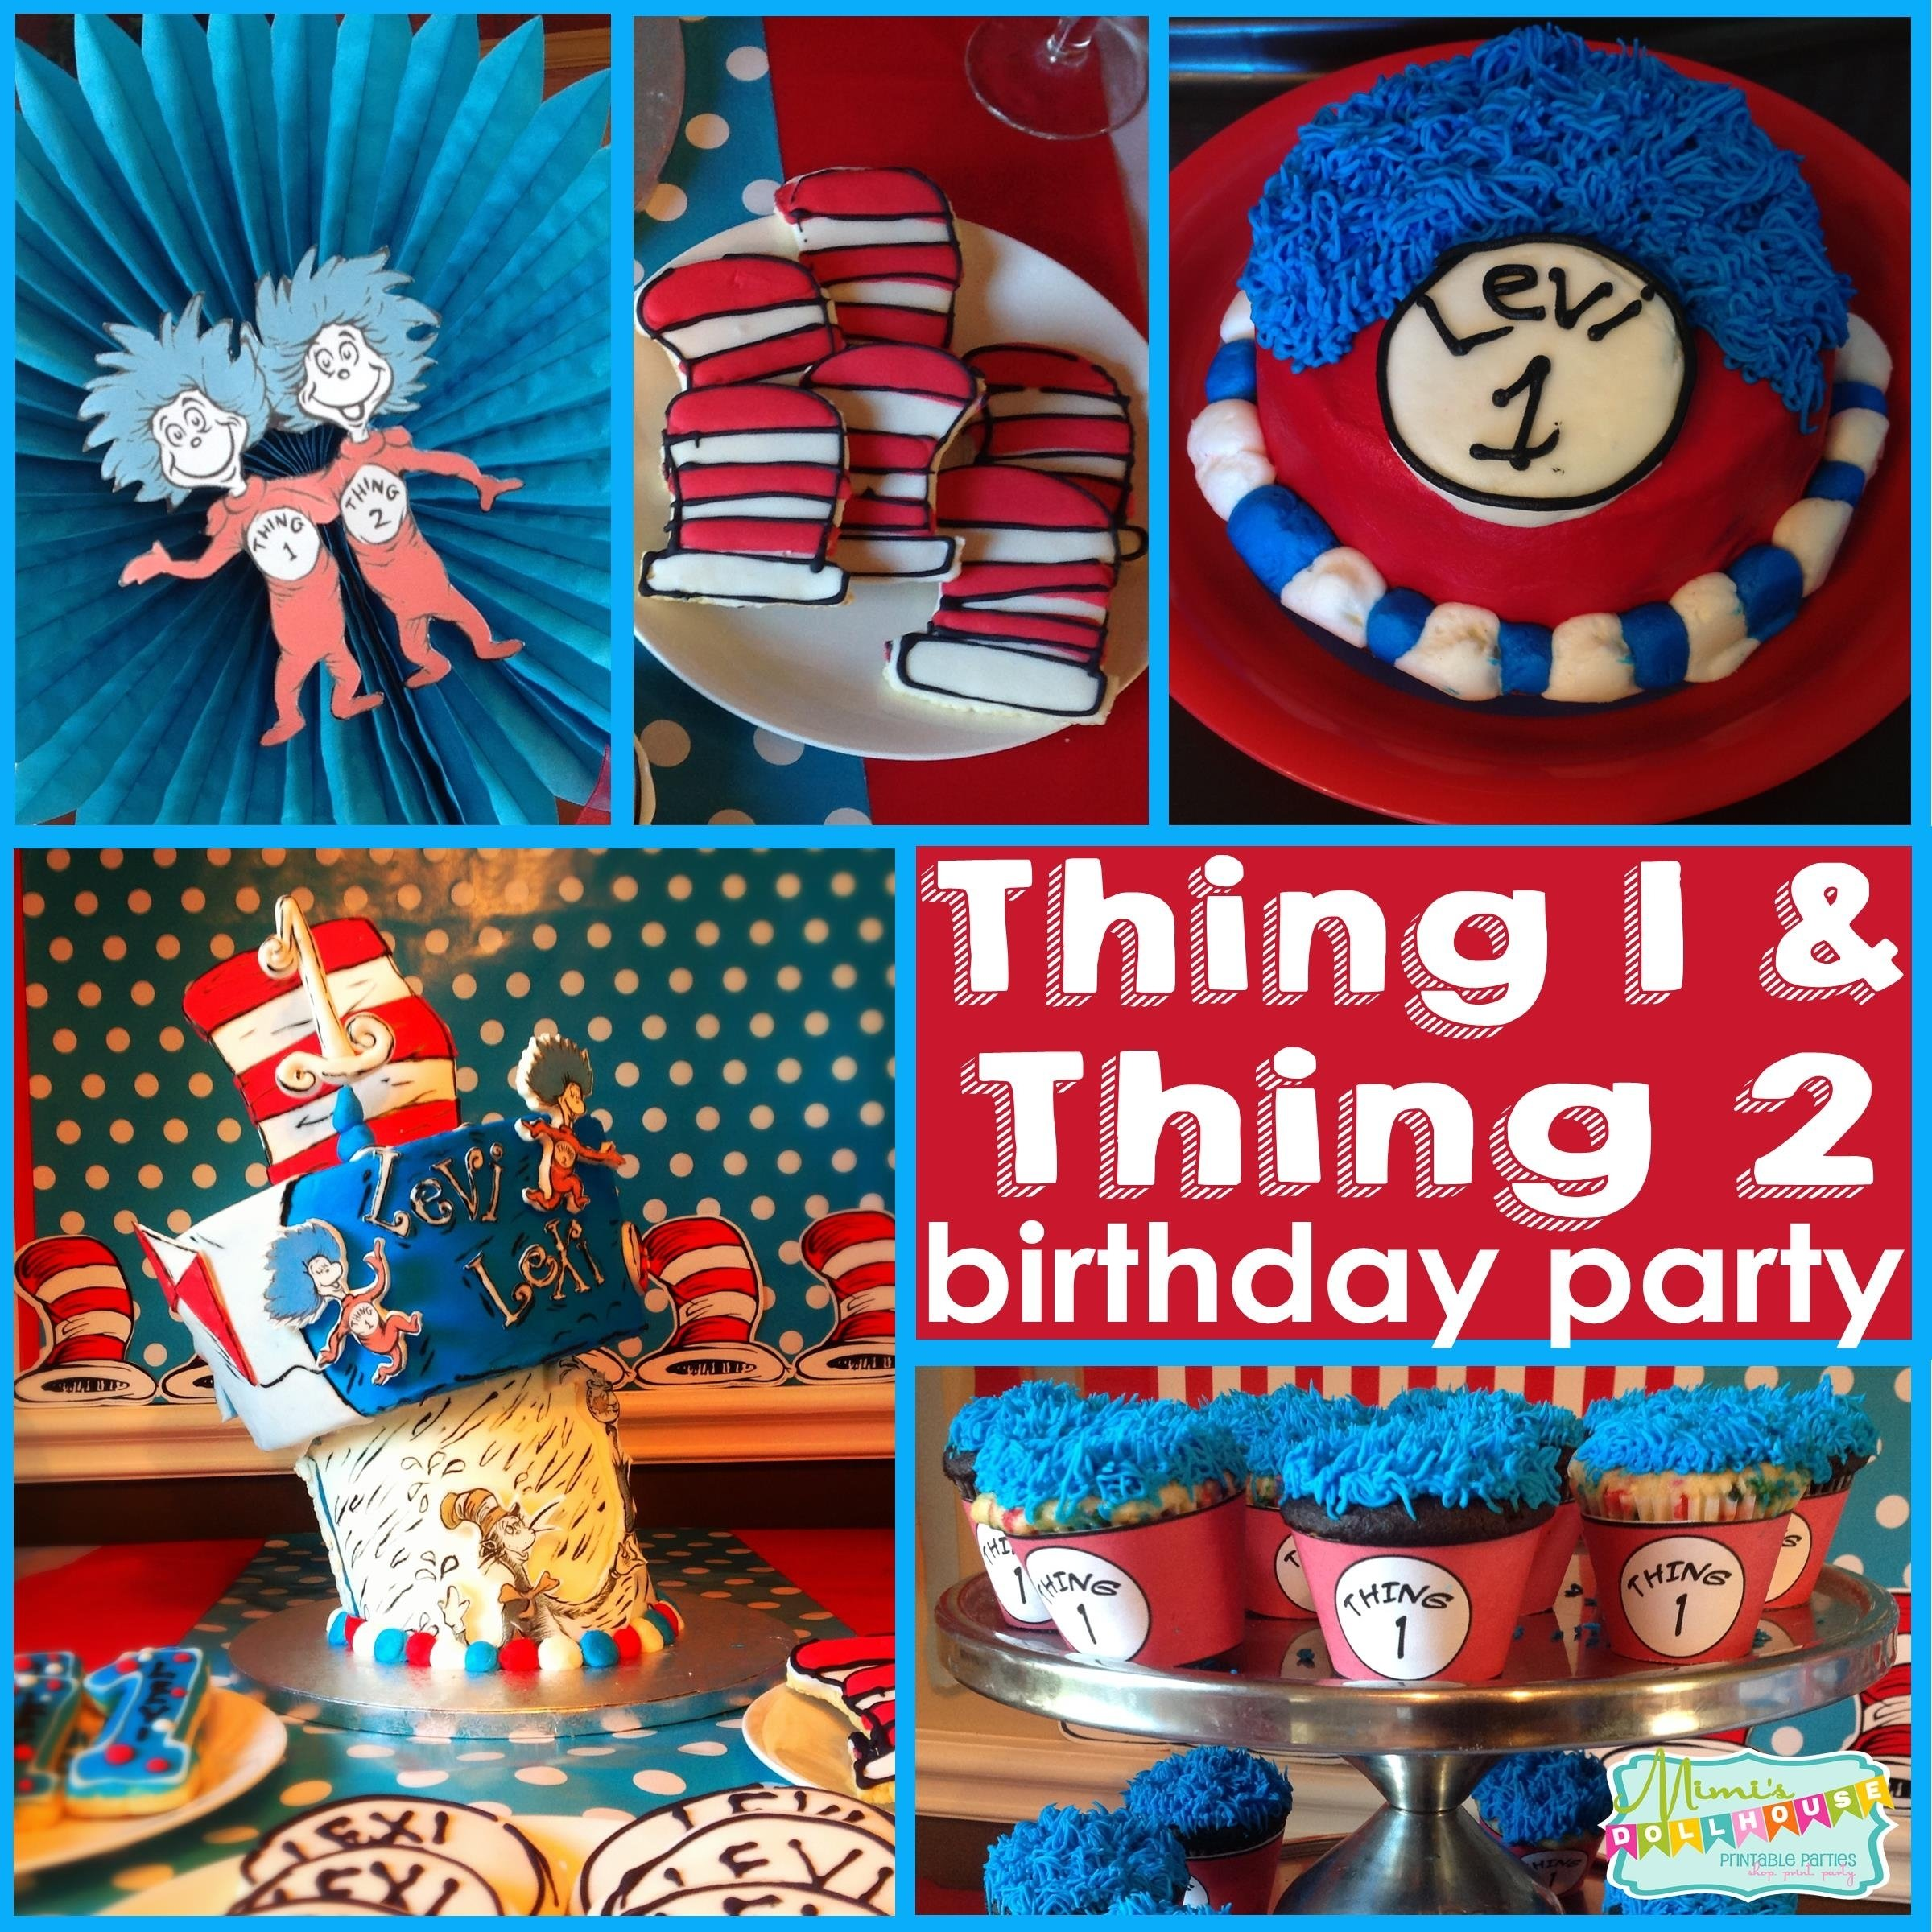 10 Lovely Thing 1 And Thing 2 Birthday Party Ideas thing 1 and thing 2 party twins first birthday party oh what fun 2020